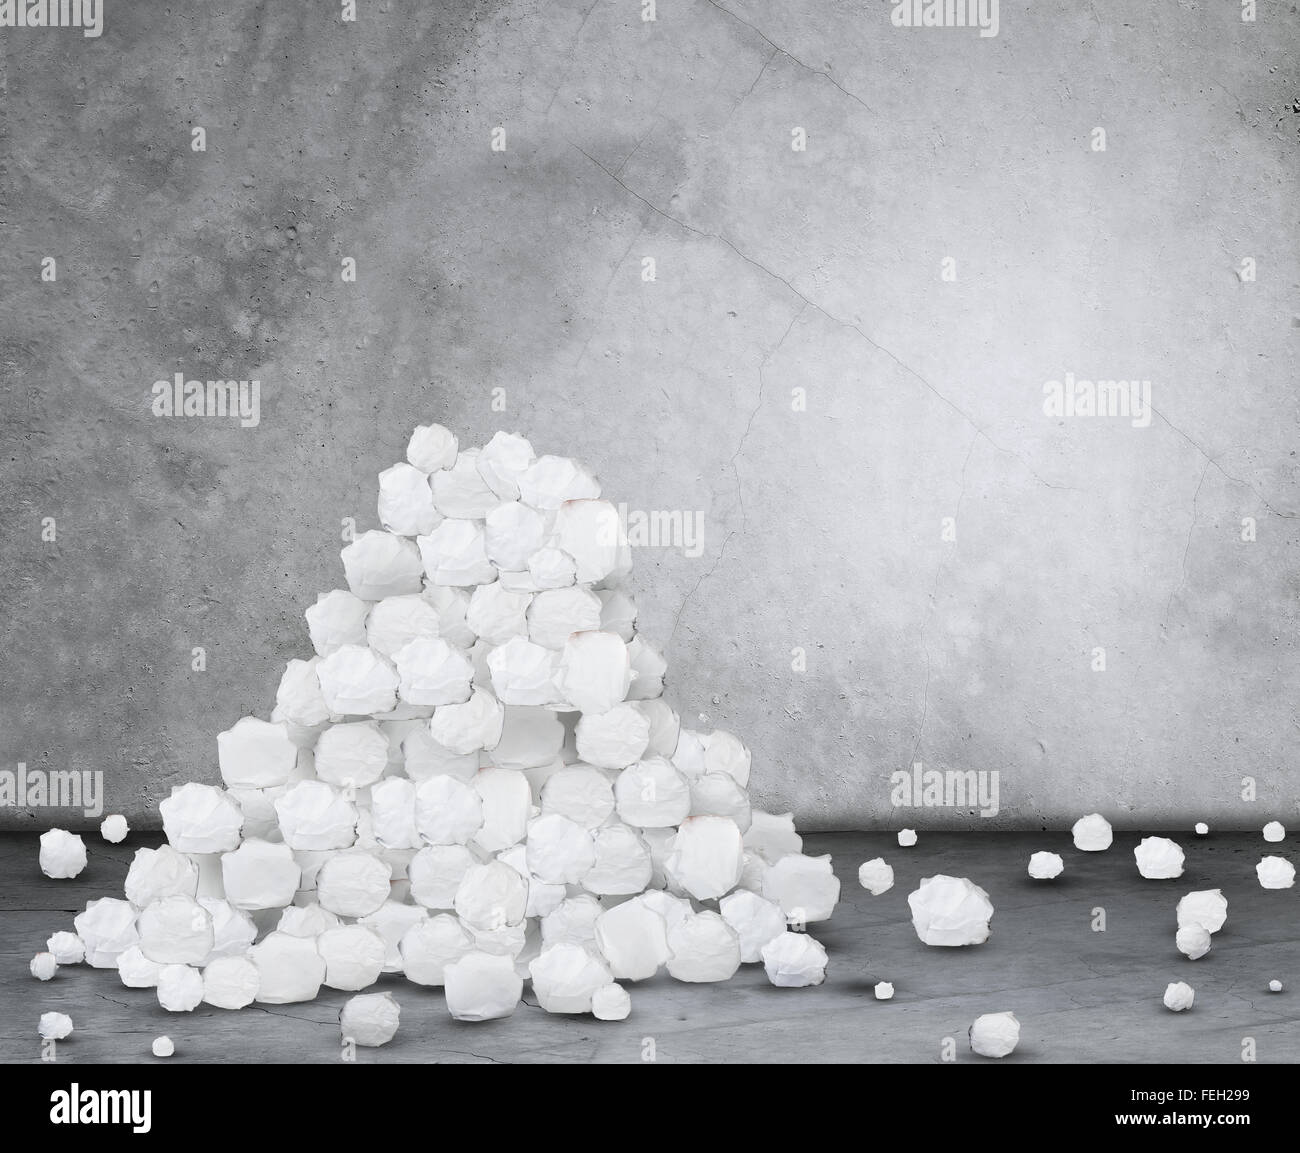 pile of crumpled paper balls stock photo: 95032037 - alamy